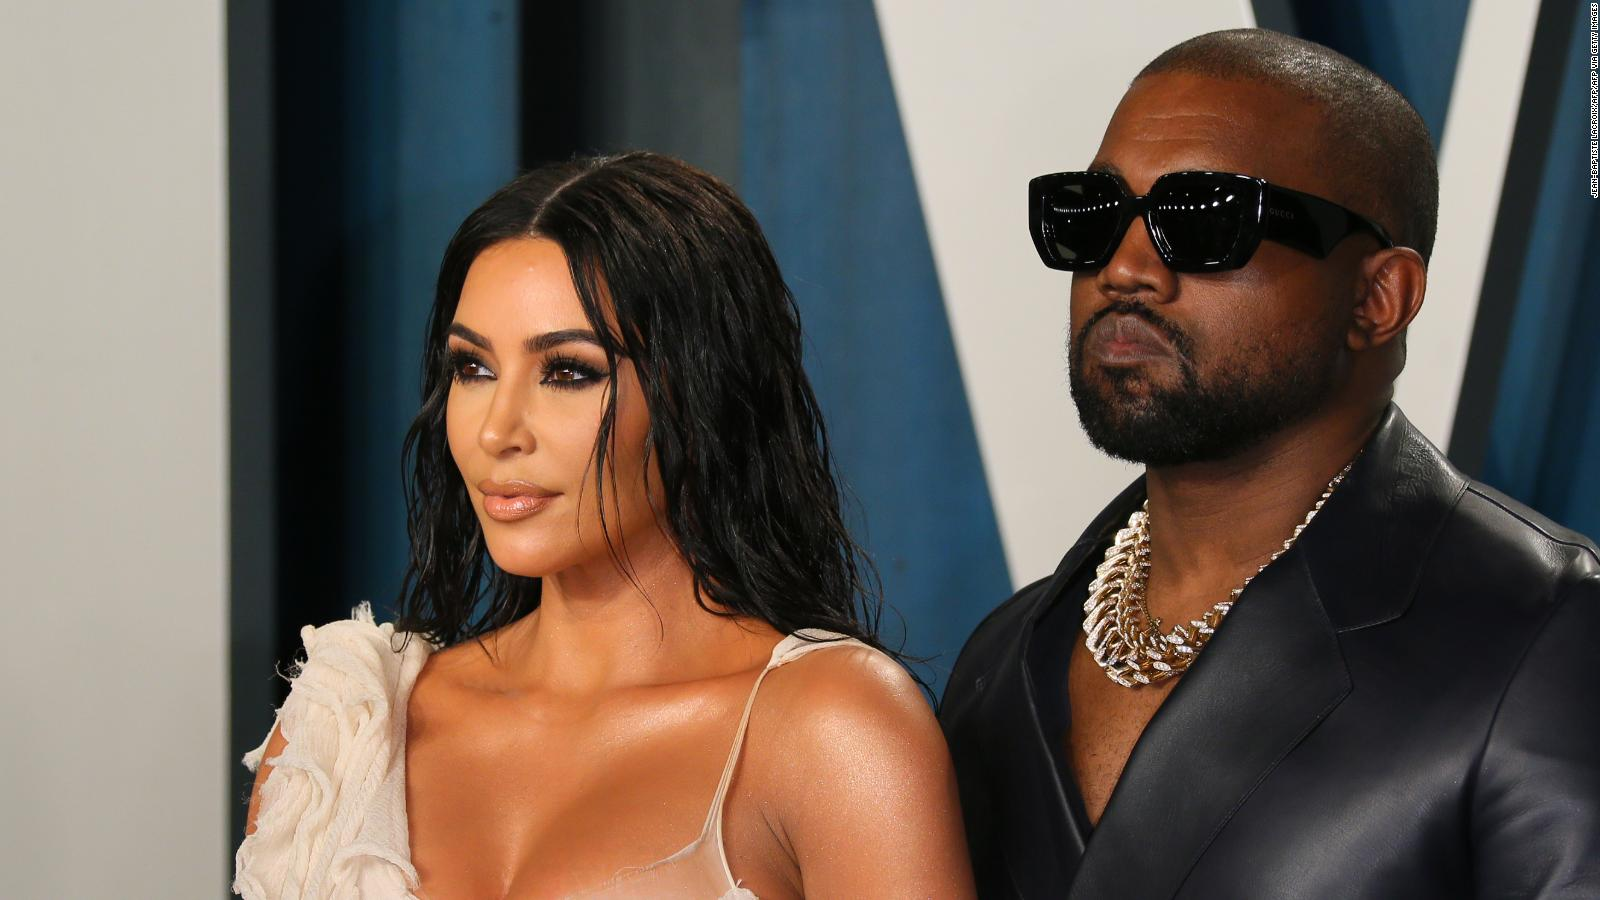 Kim Kardashian Addresses Kanye West S Mental Health And Asks For Compassion Cnn